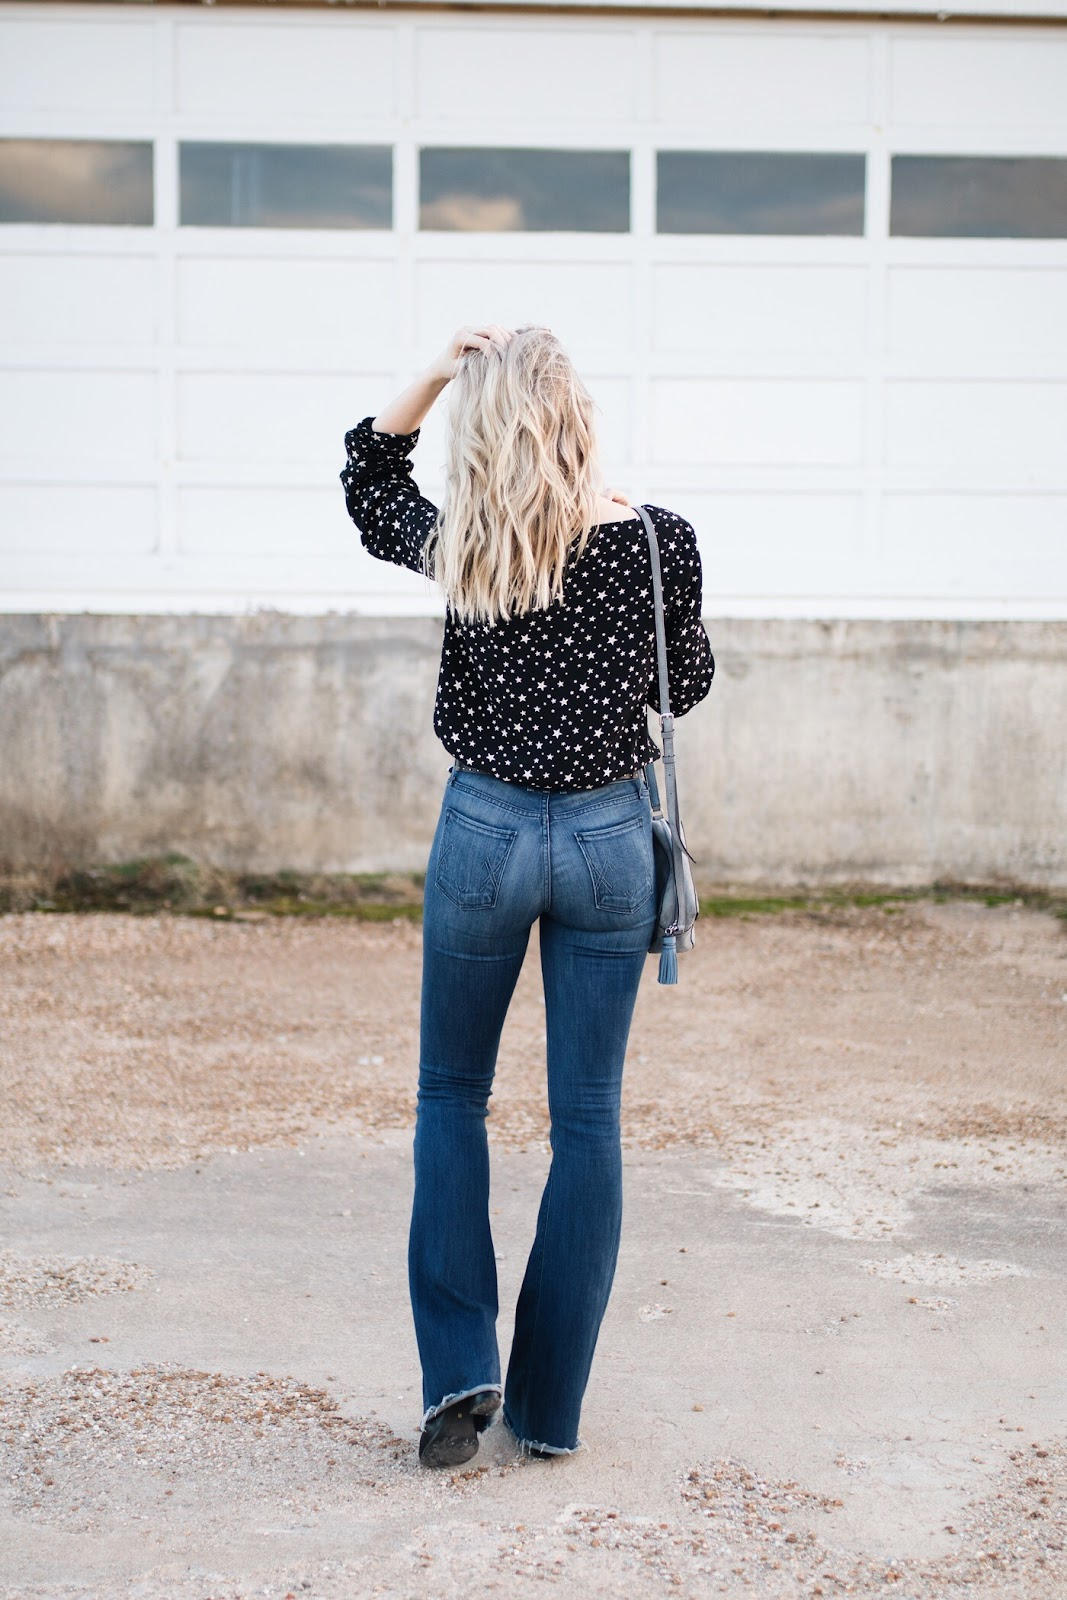 Flares jeans with a star print top